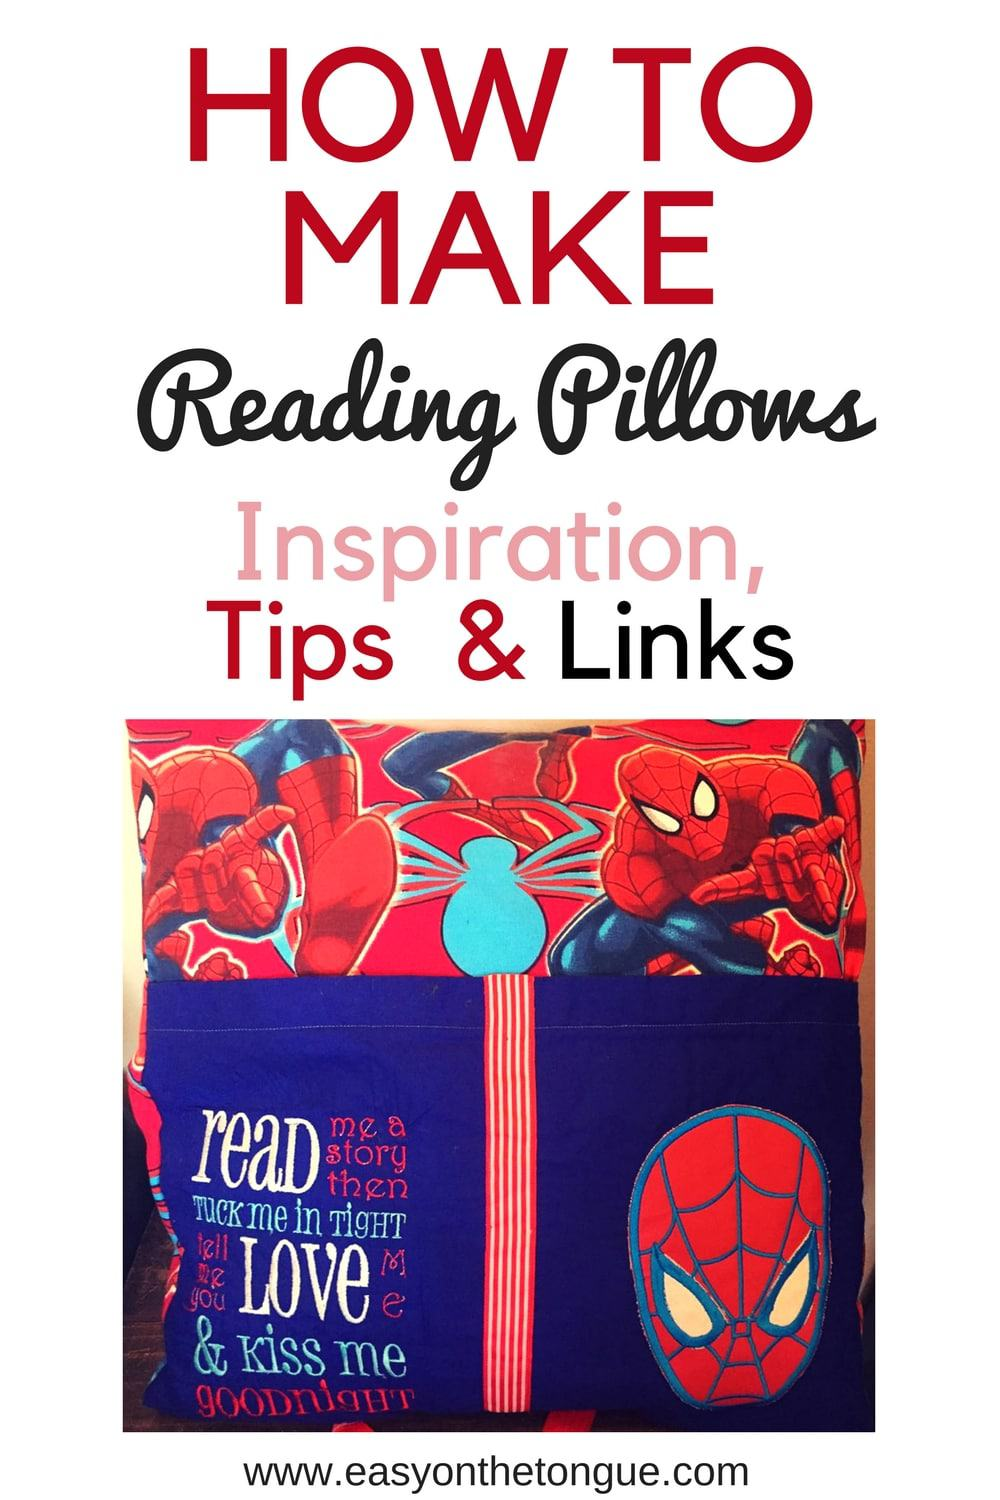 How to make Reading Pillows Inspiration Tips Links more at www.easyonthetongue.com  How to make Reading Pillows?  Inspiration, Tips & Links